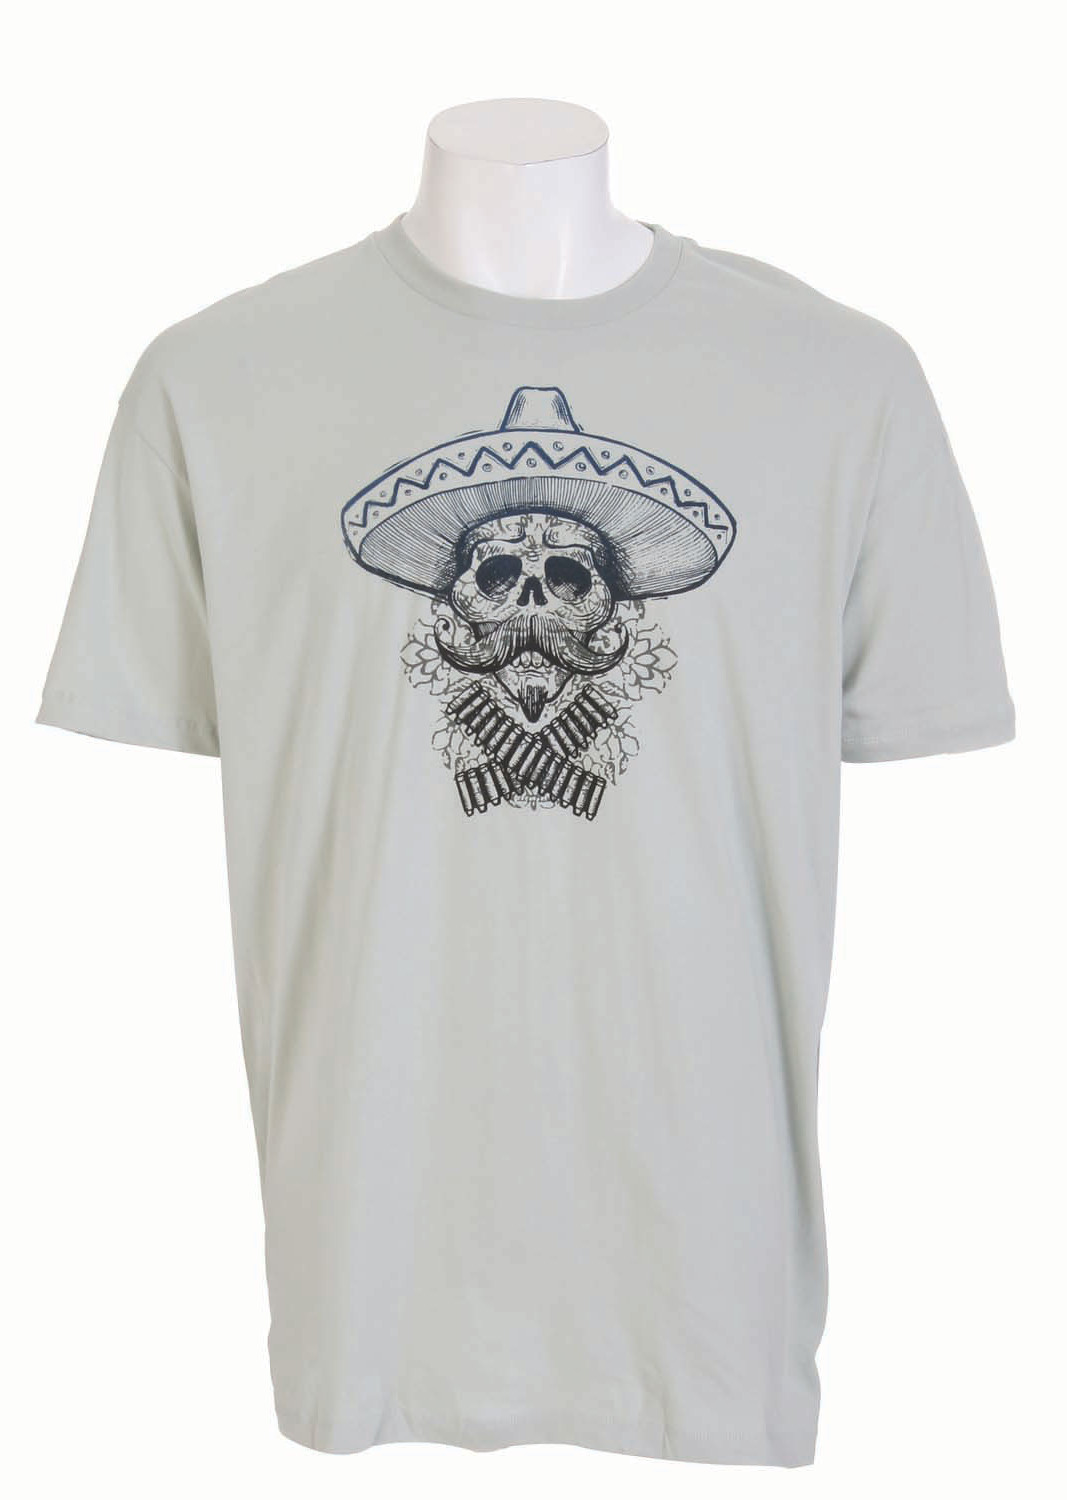 Dakine Guys Posada Skull T-Shirt Stone Putty  dk-posada-t-putty-09.jpg